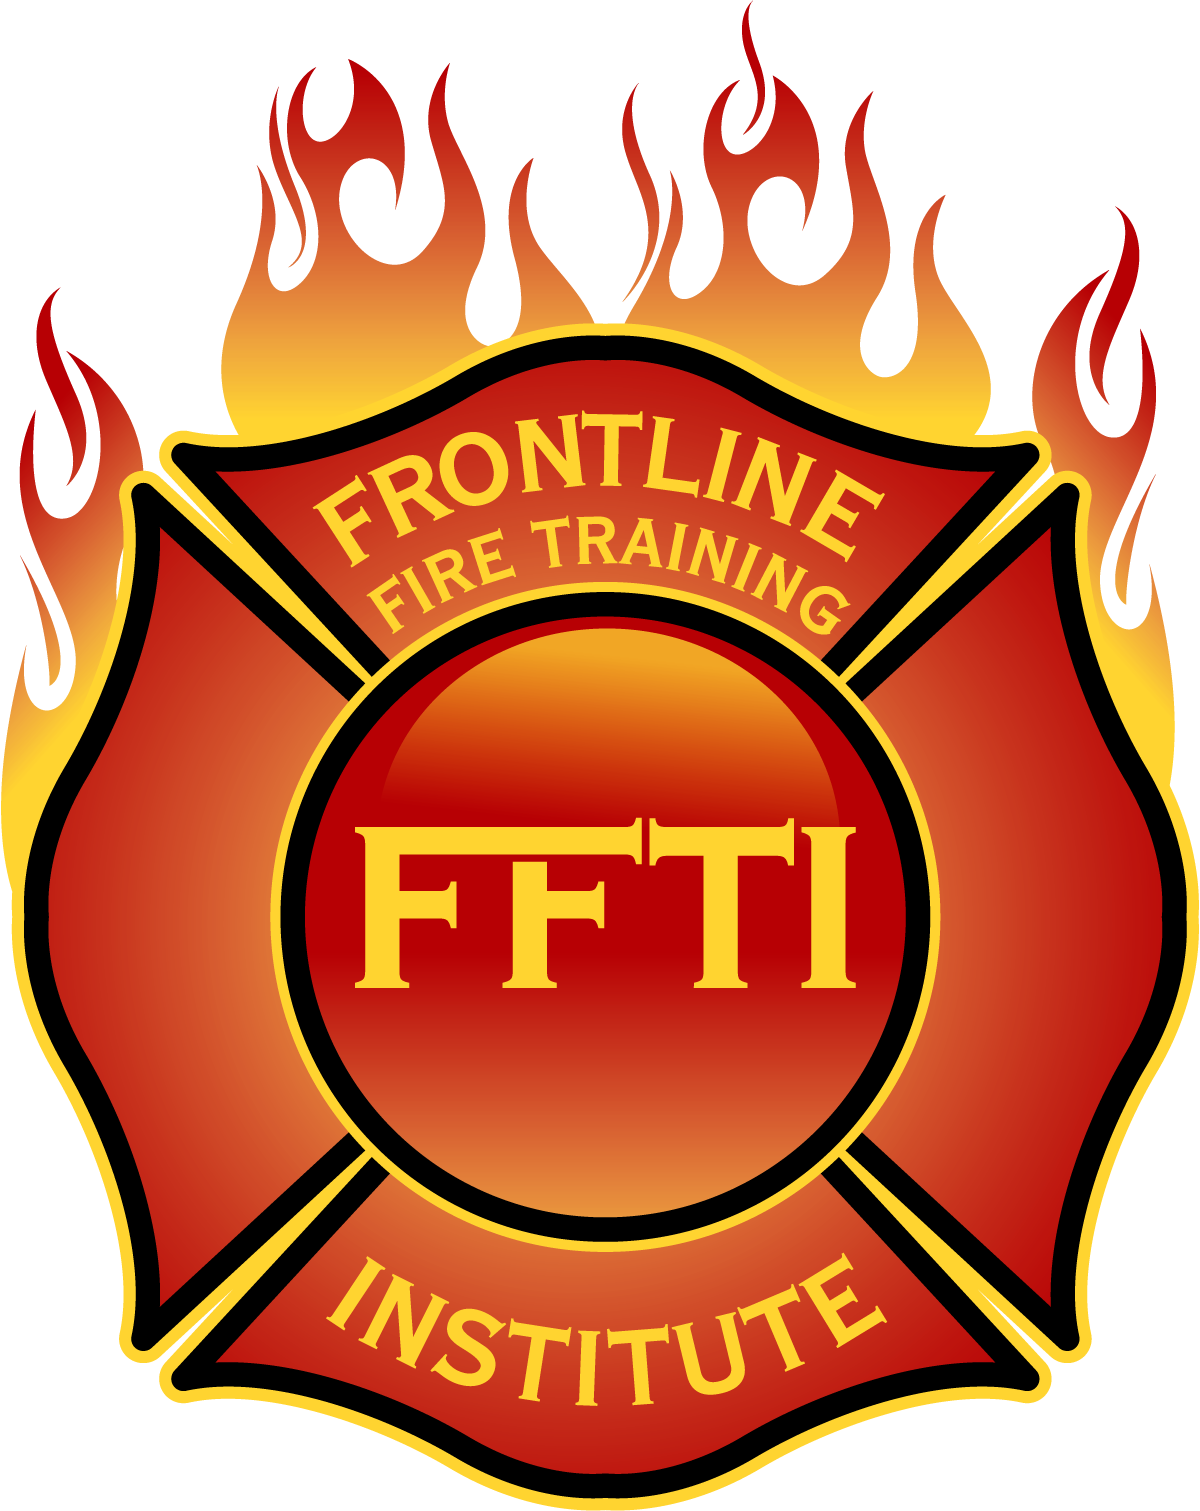 FRONTLINE FIRE TRAINING INSTITUTE